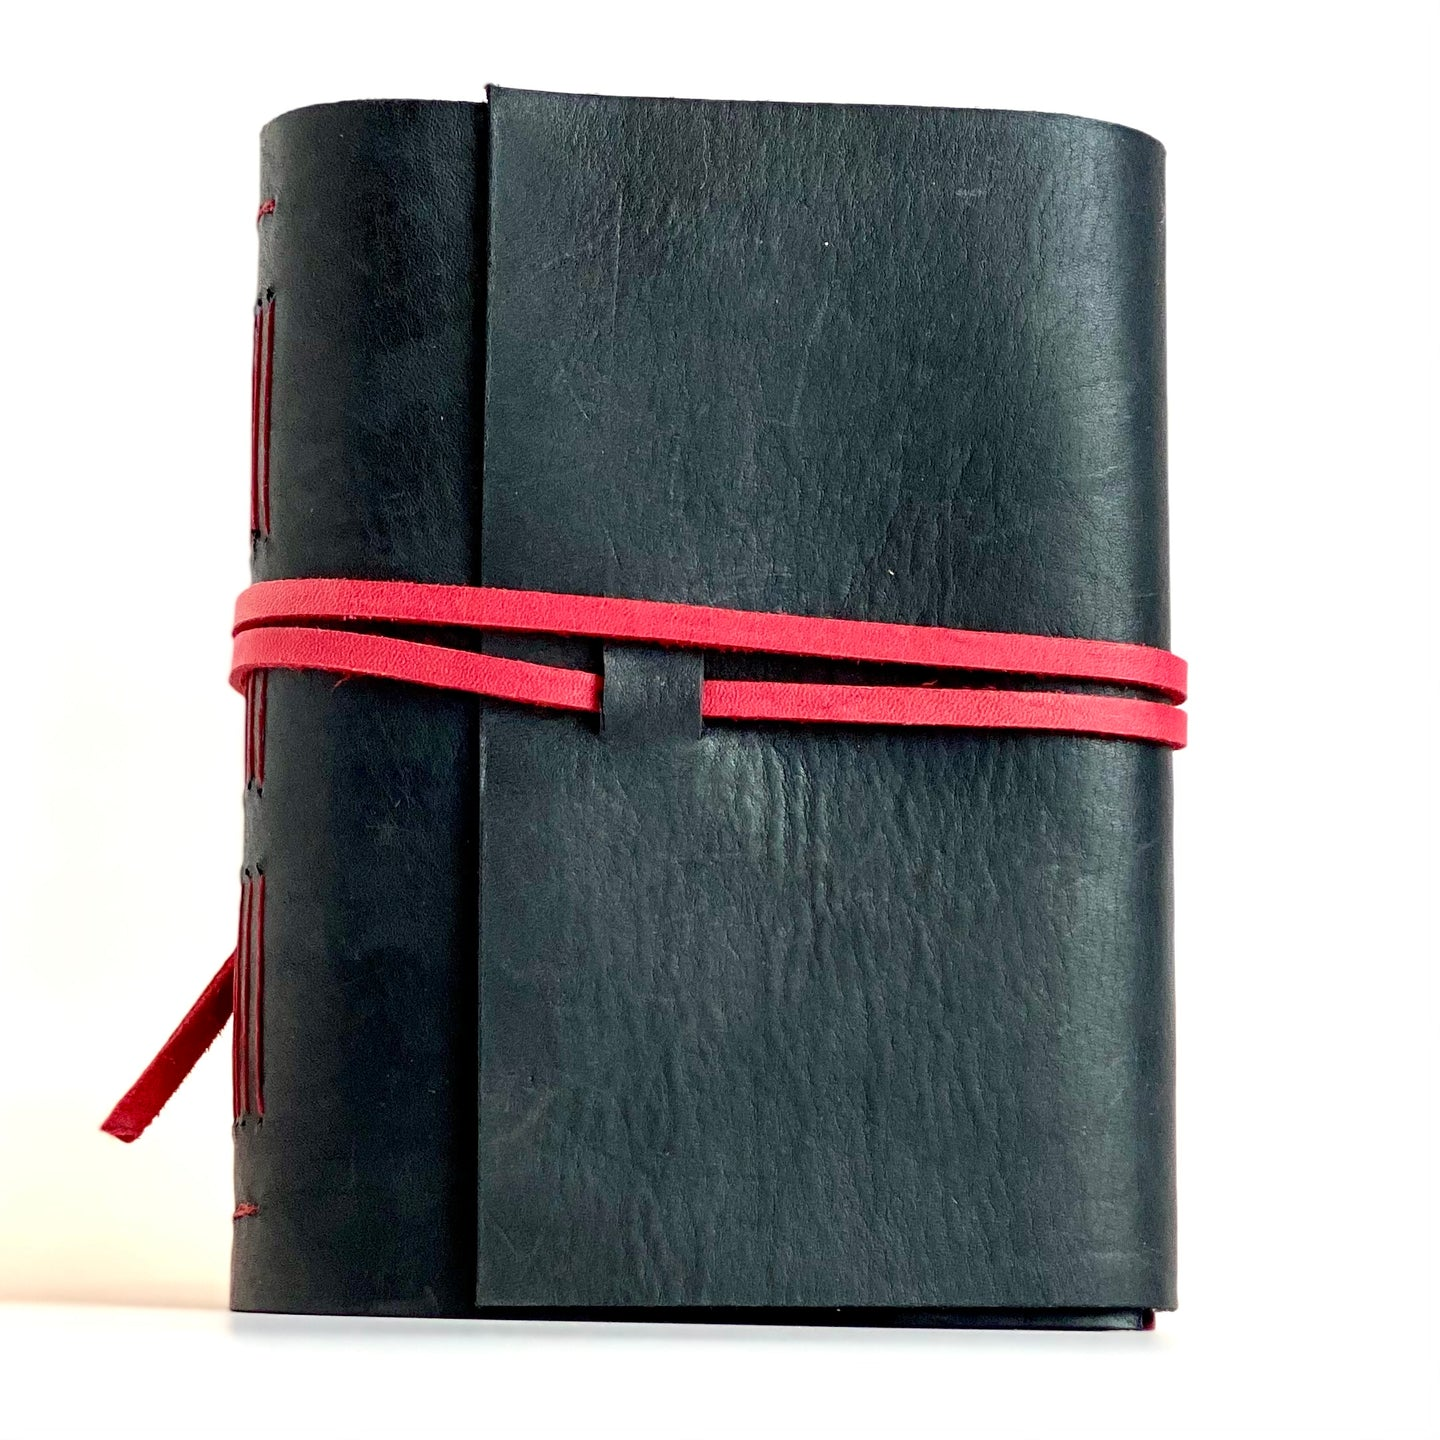 Handmade leather journal by Locals artist Nancy Wallace